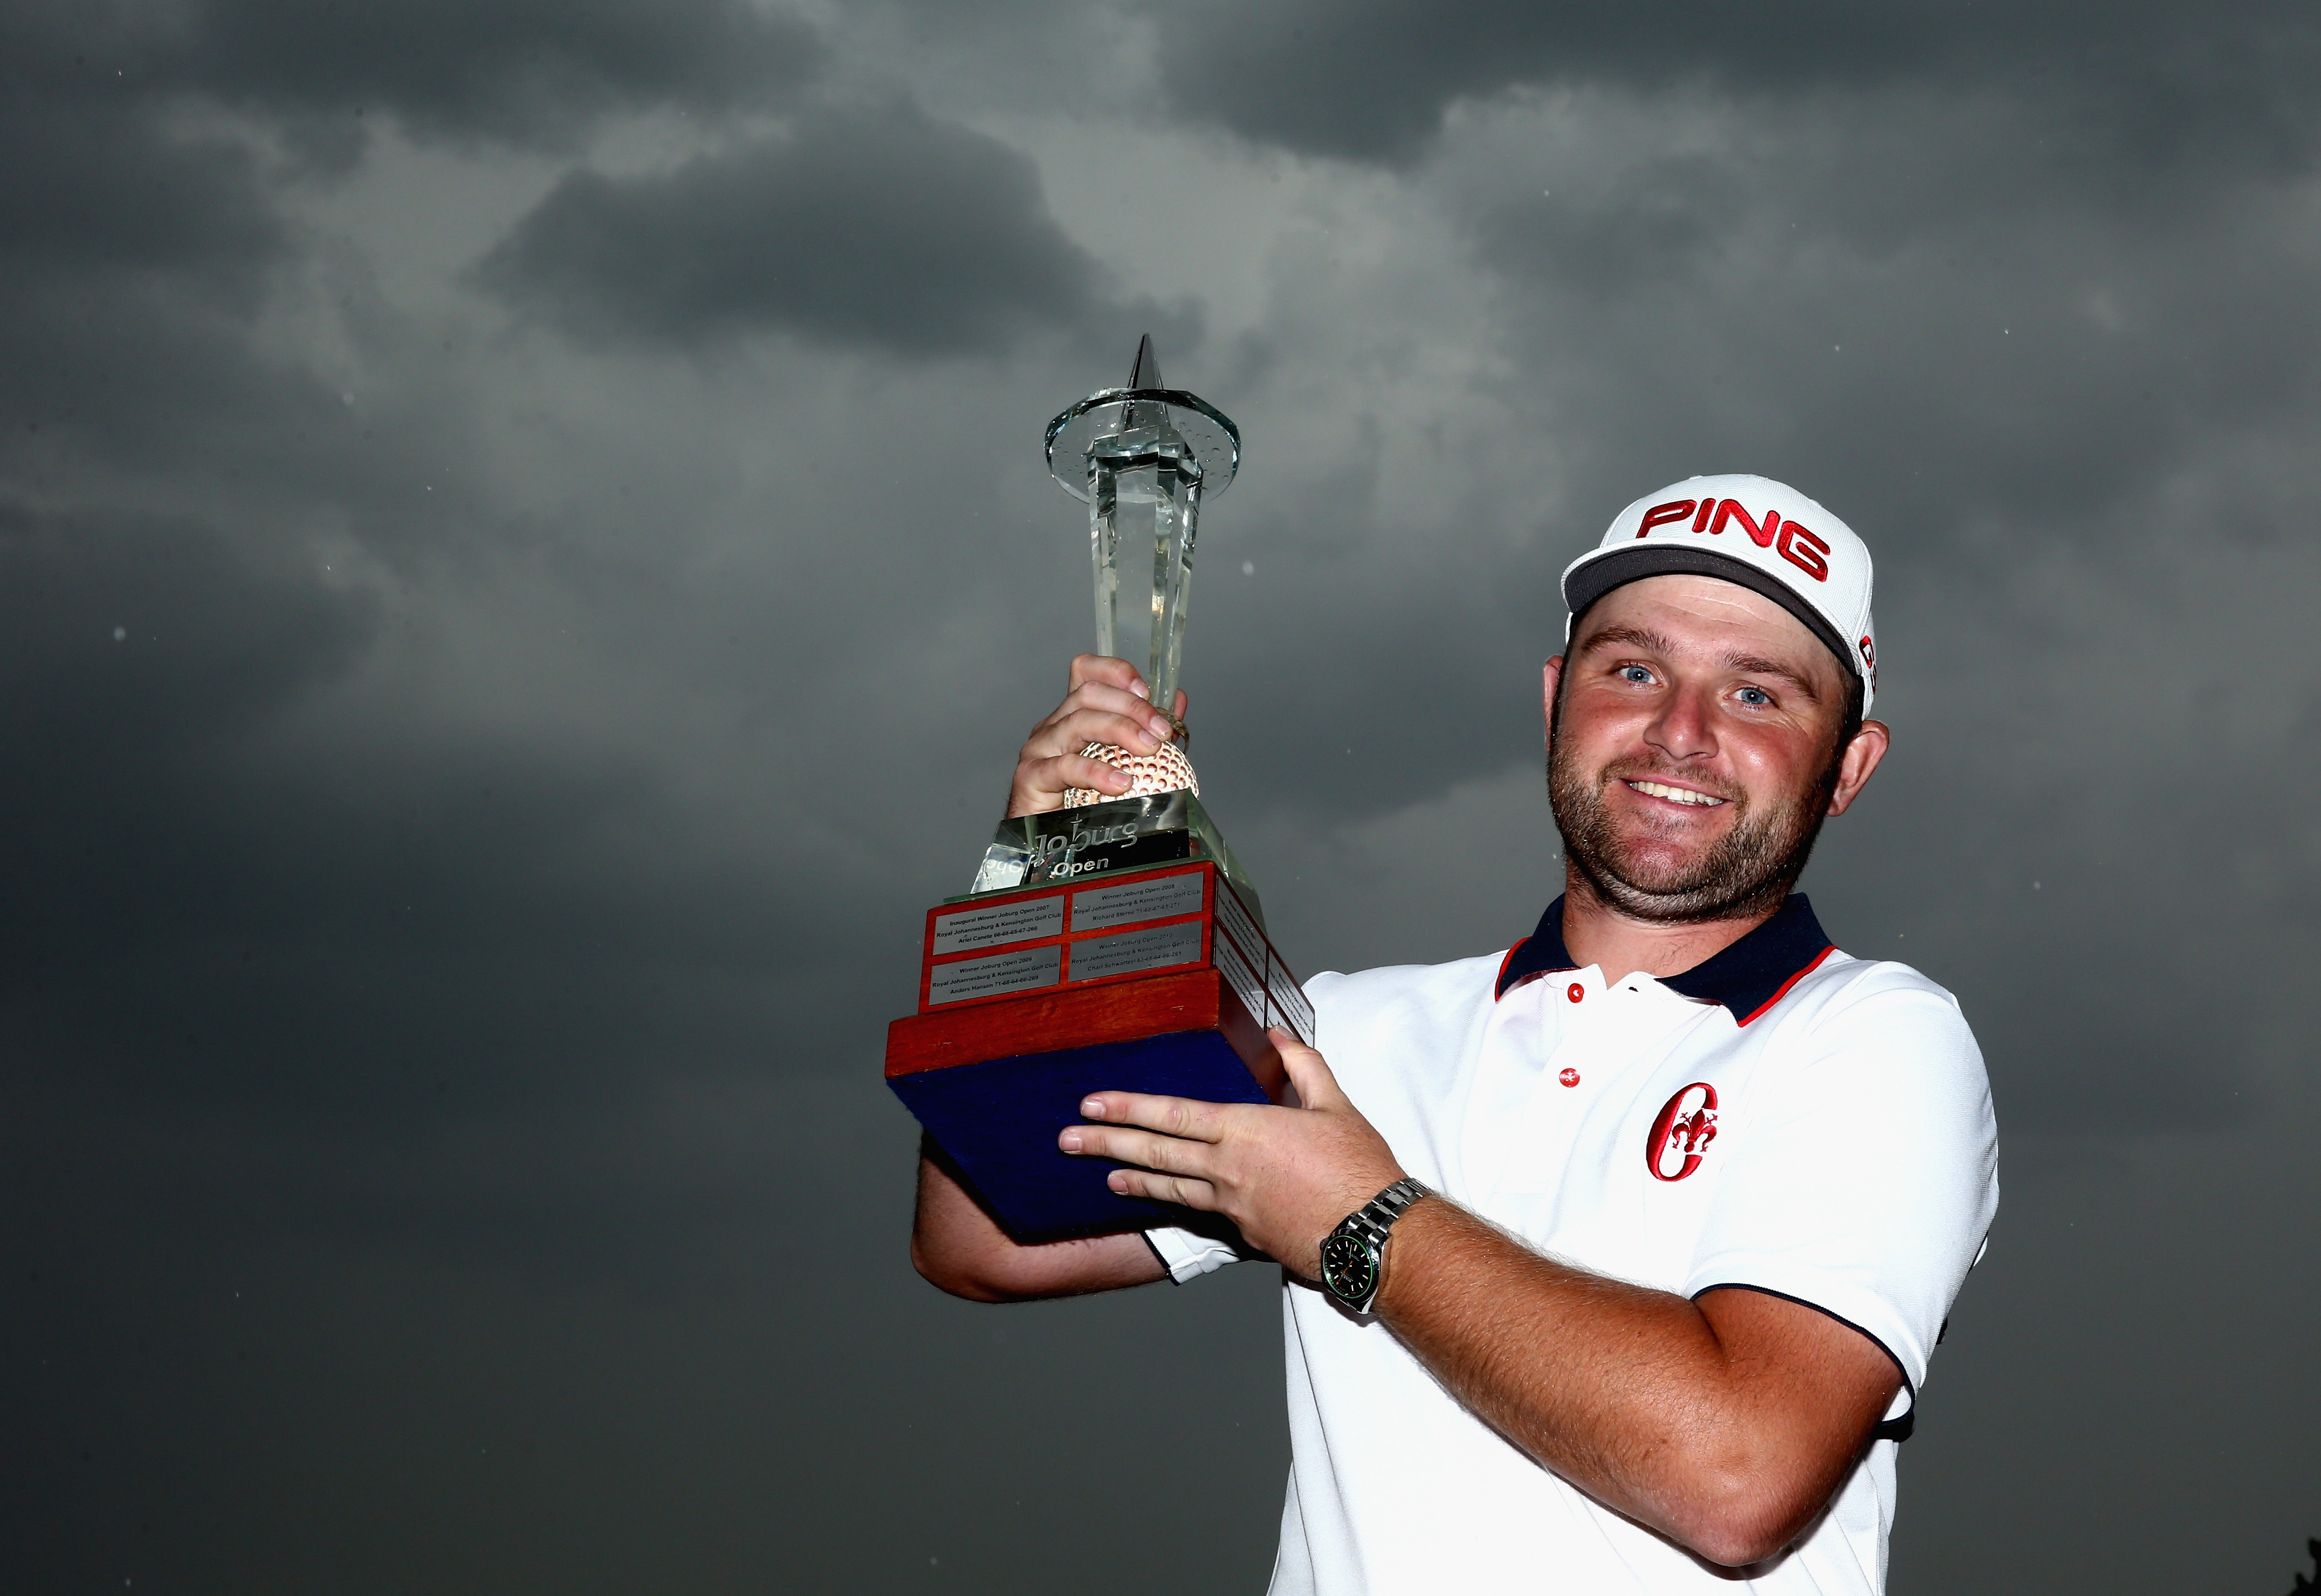 Andy Sullivan won his second event in South Africa this year (Photo: Getty Images)